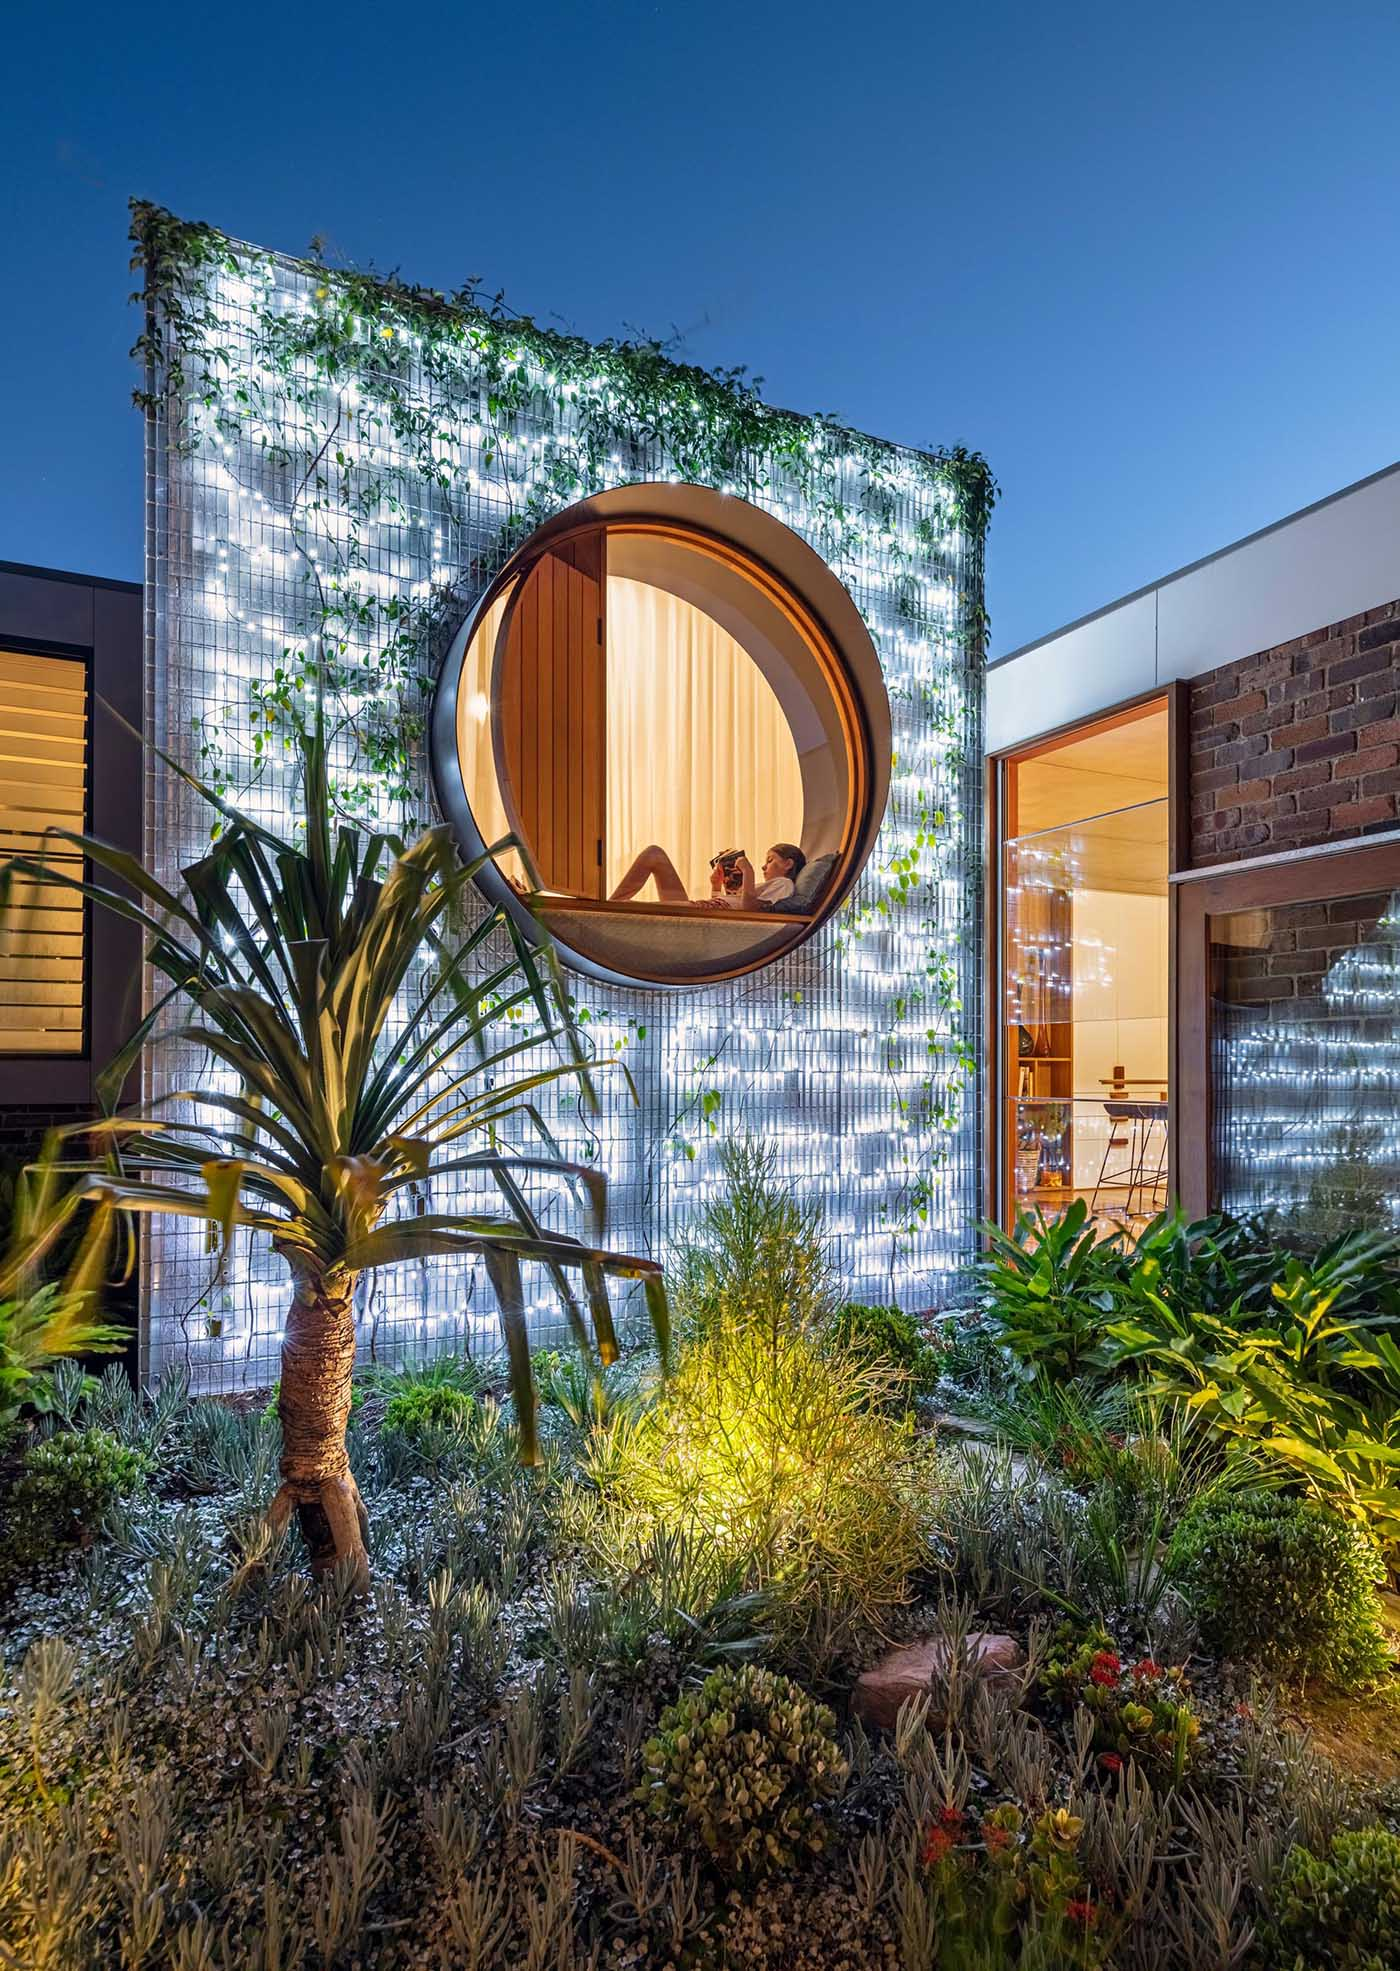 At night, this wall is lit from behind, creating an outdoor focal point that also helps to light up the nearby patio.